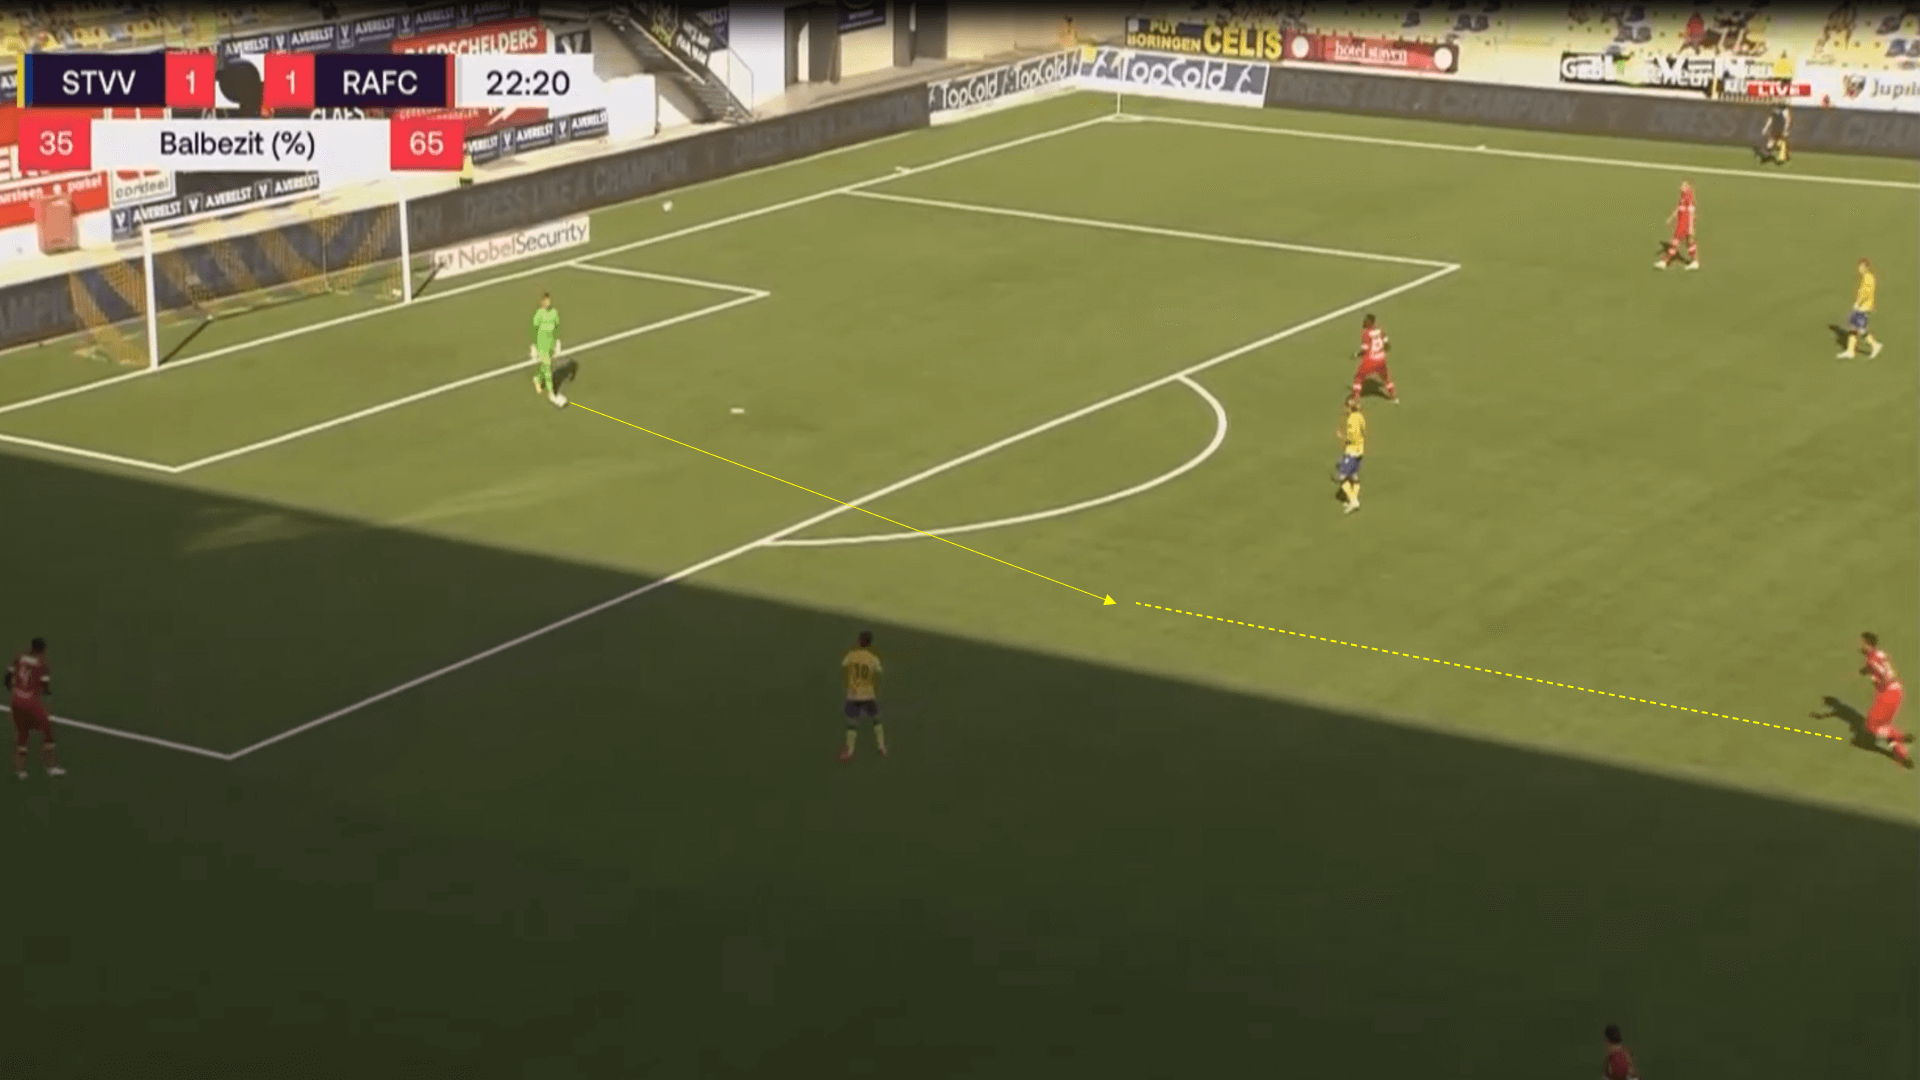 Belgian Pro League 2020/21 - Sint Truiden v Antwerp - tactical analysis tactics